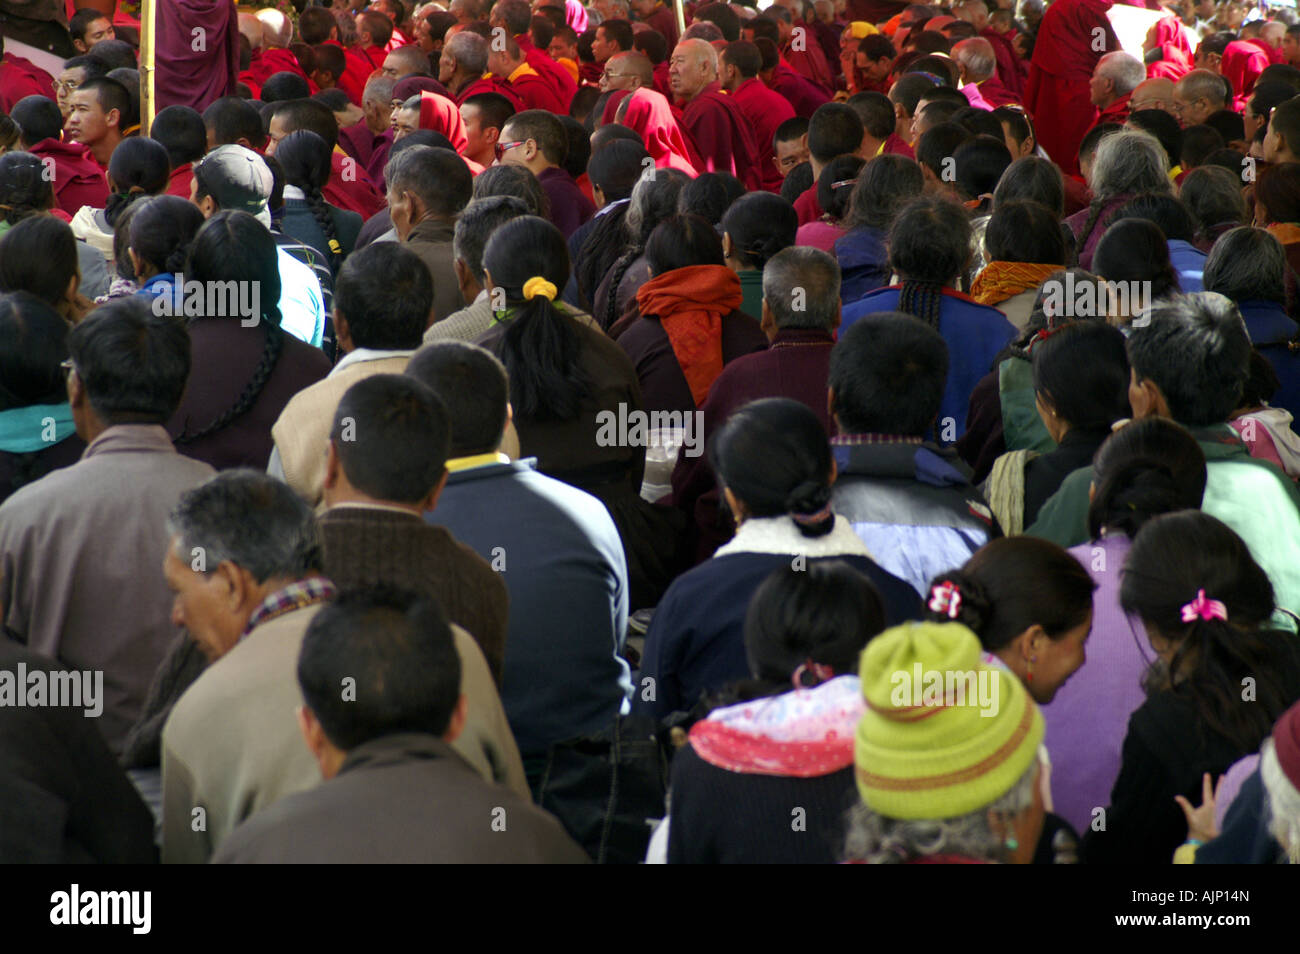 Gathering of many priests and watchers at Phyang monastery in Ladakh, India, ceremony puja holy buddhist celebration - Stock Image